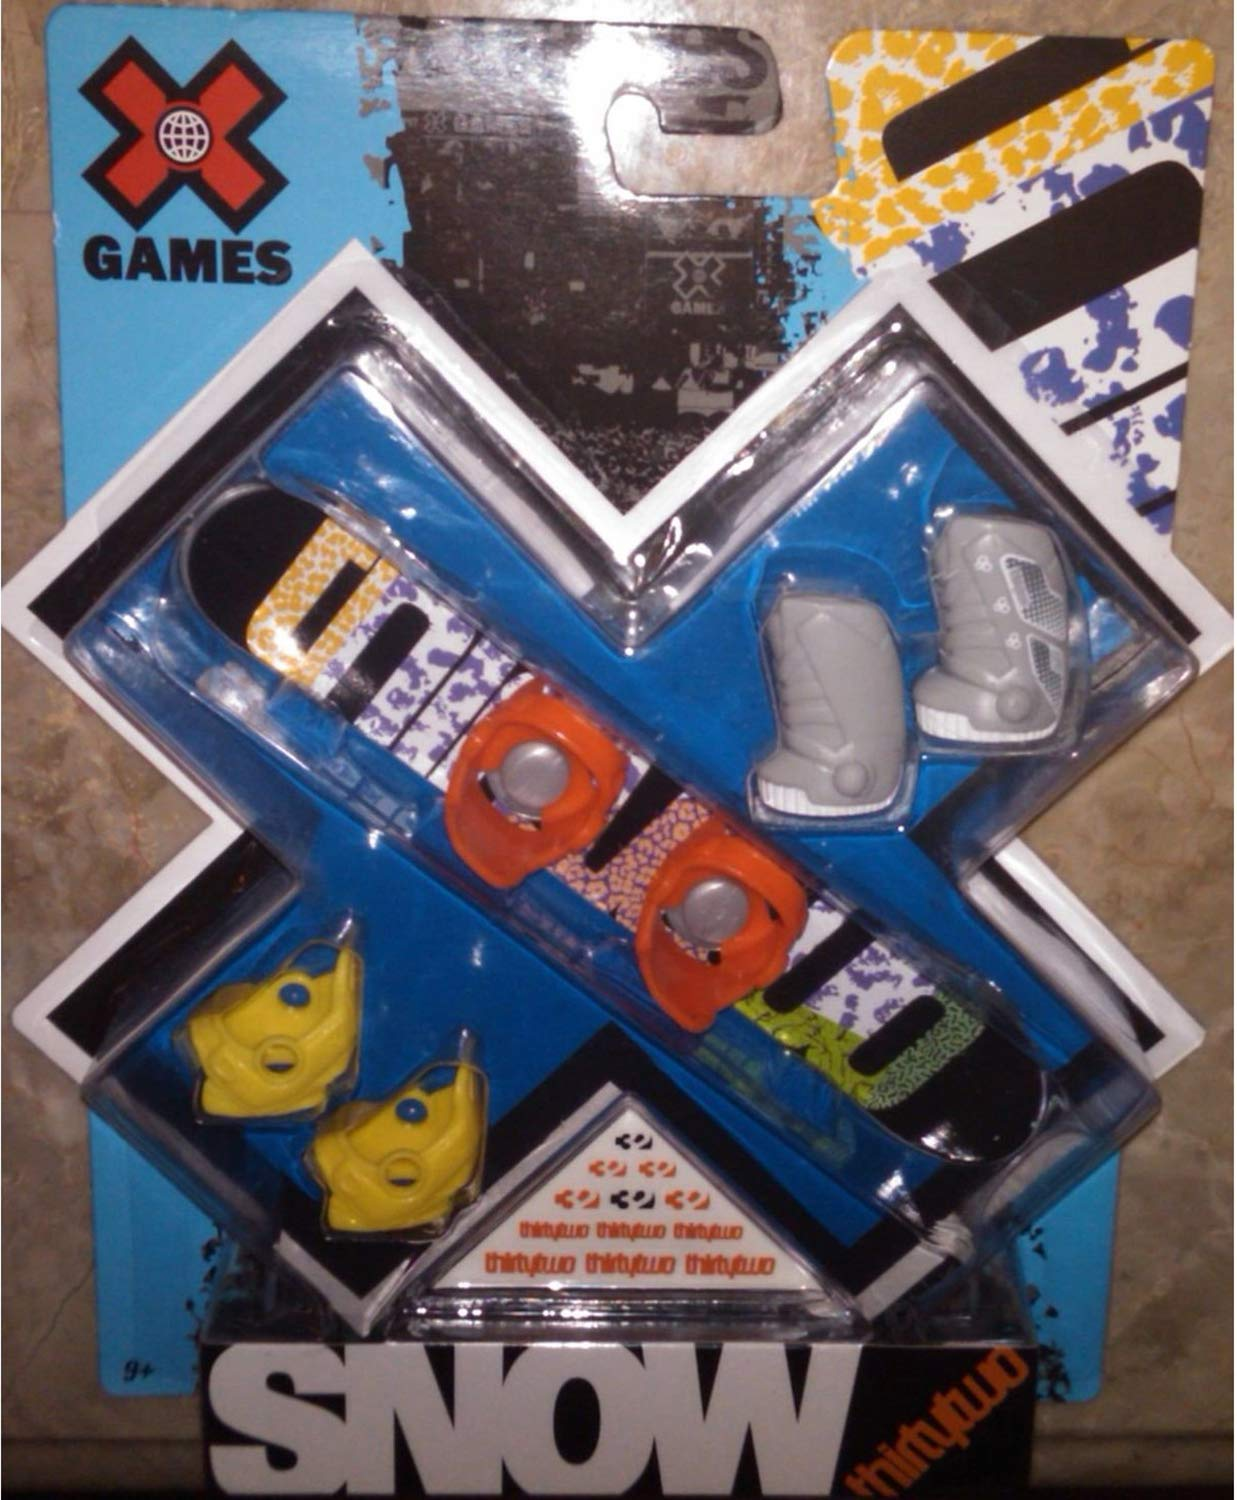 X Games Fingerboard Snowboard 32 Eighties Snowboard / TM-Two Boots by X Games